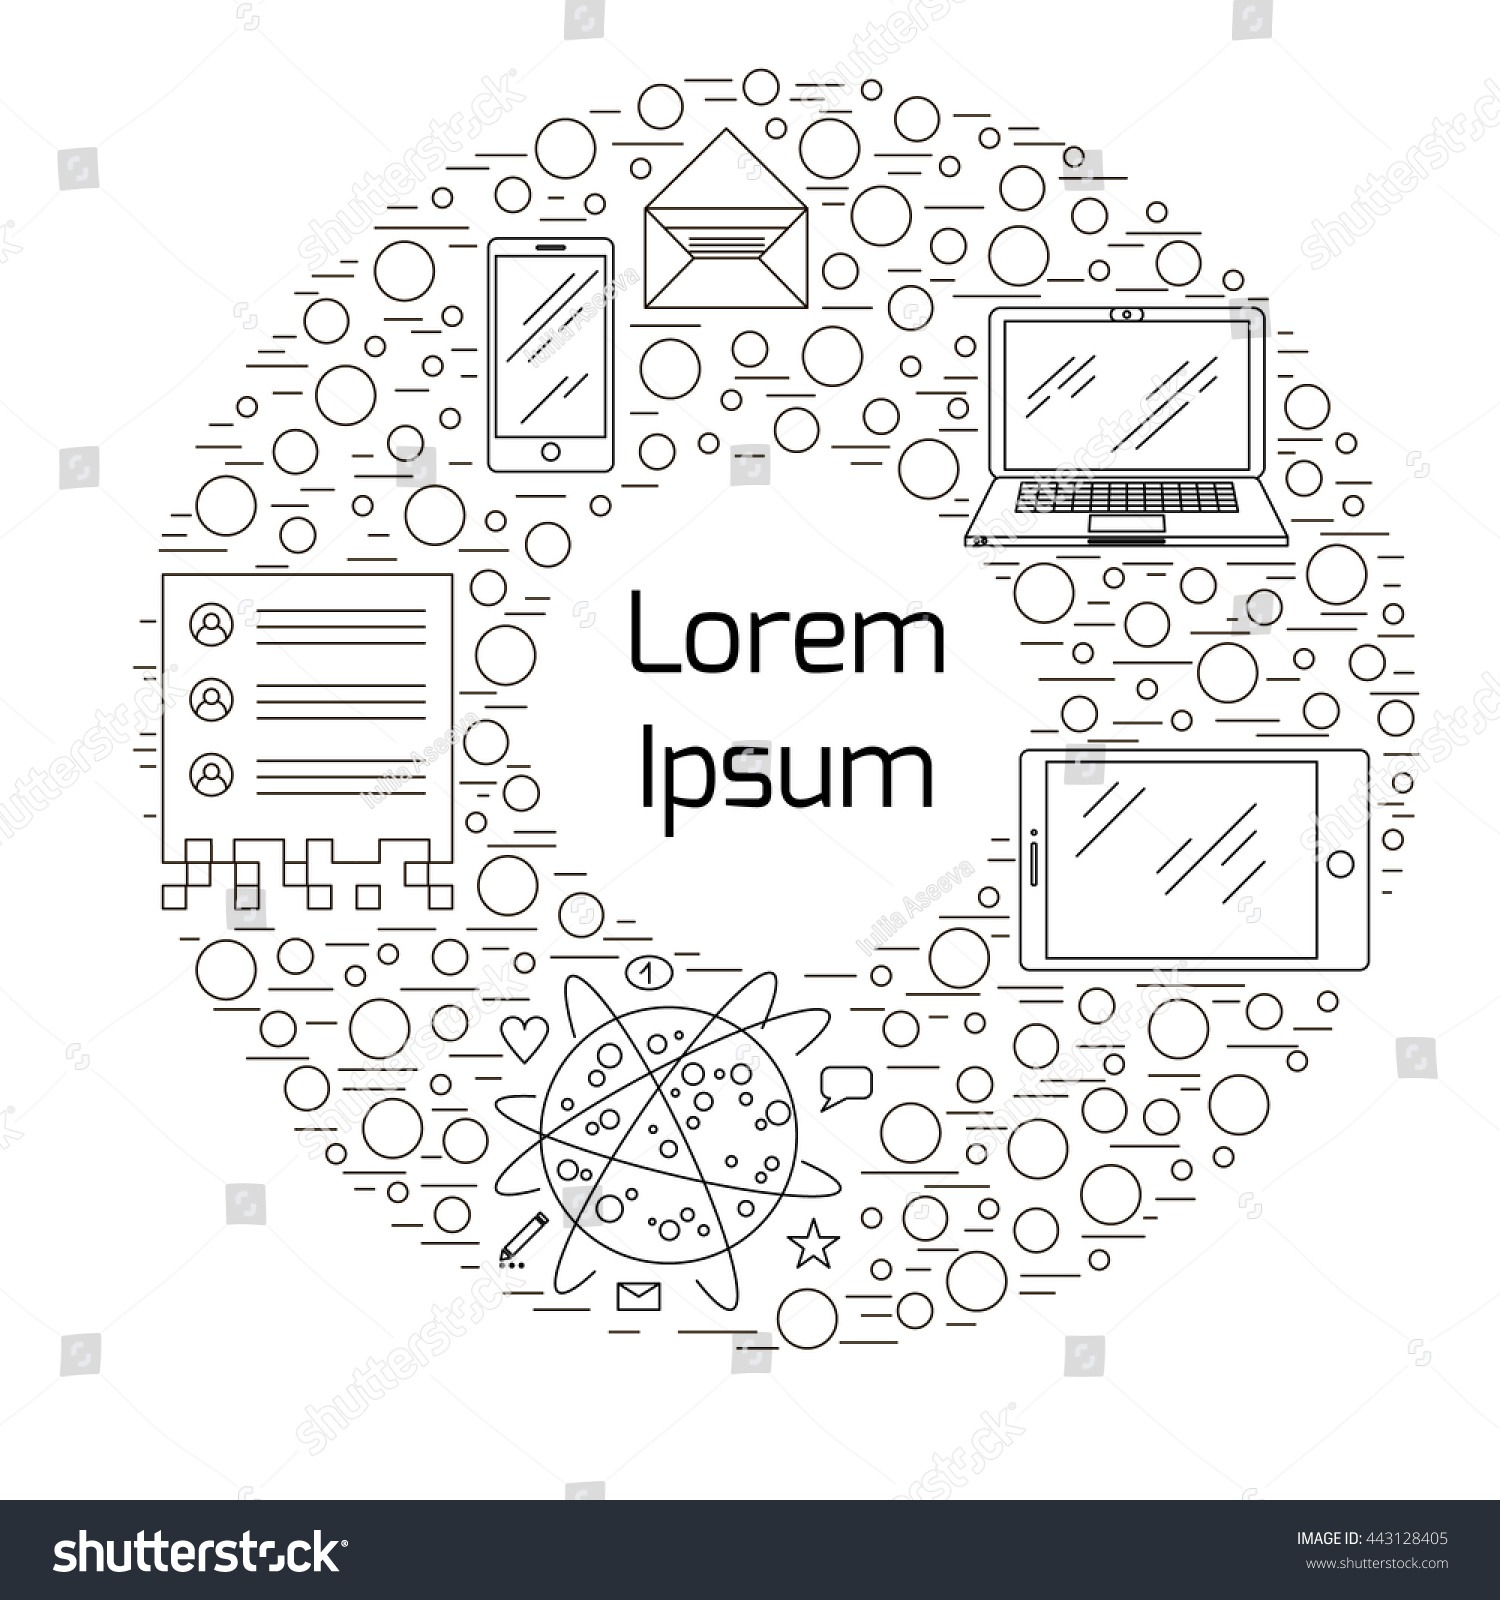 illustration on topic technology mass media stock vector 443128405 illustration on topic of technology and mass media linear vector icons mini stic and simple